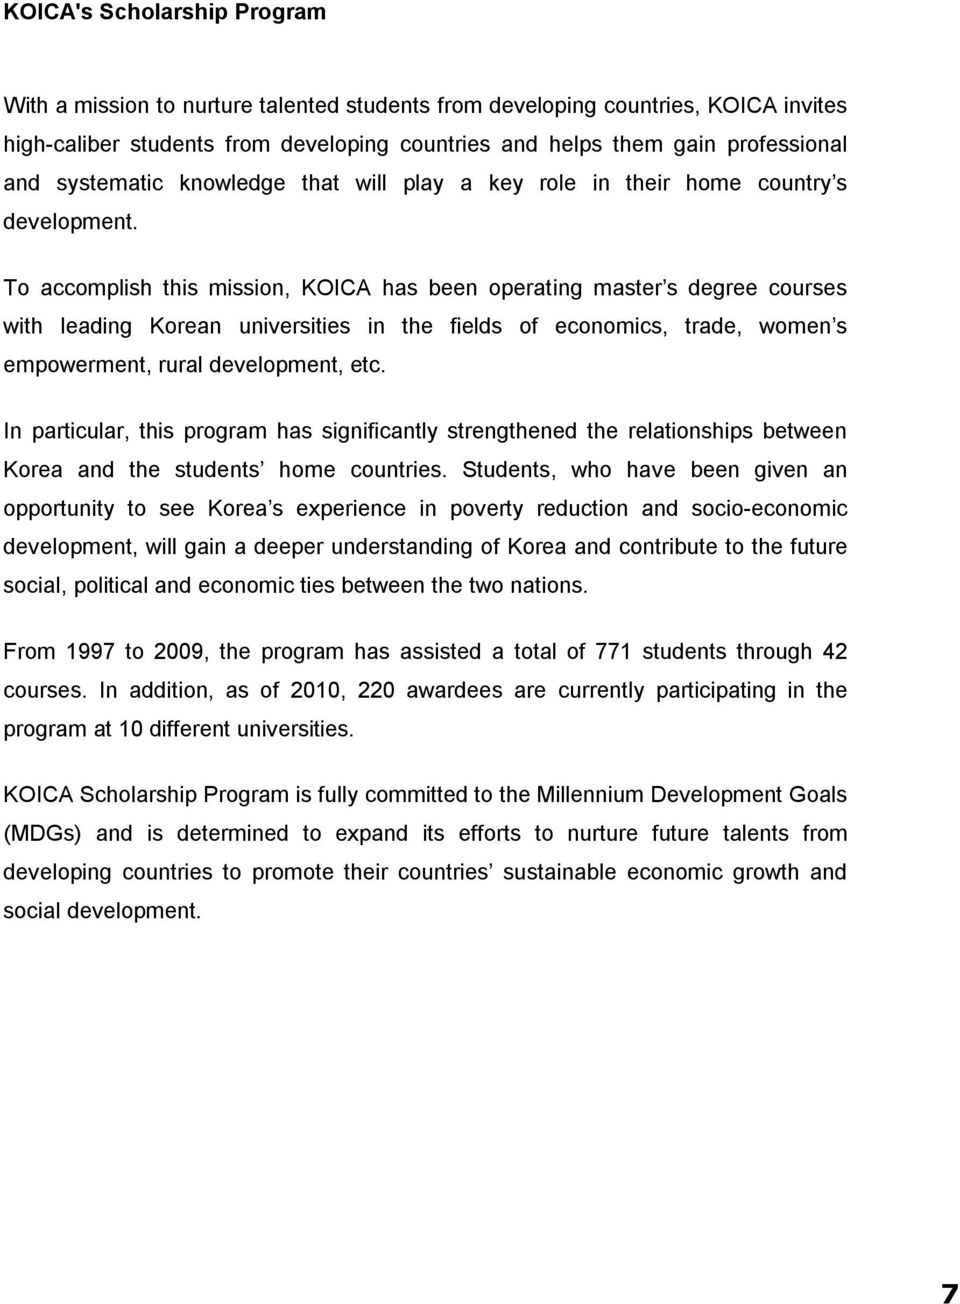 To accomplish this mission, KOICA has been operating master s degree courses with leading Korean universities in the fields of economics, trade, women s empowerment, rural development, etc.